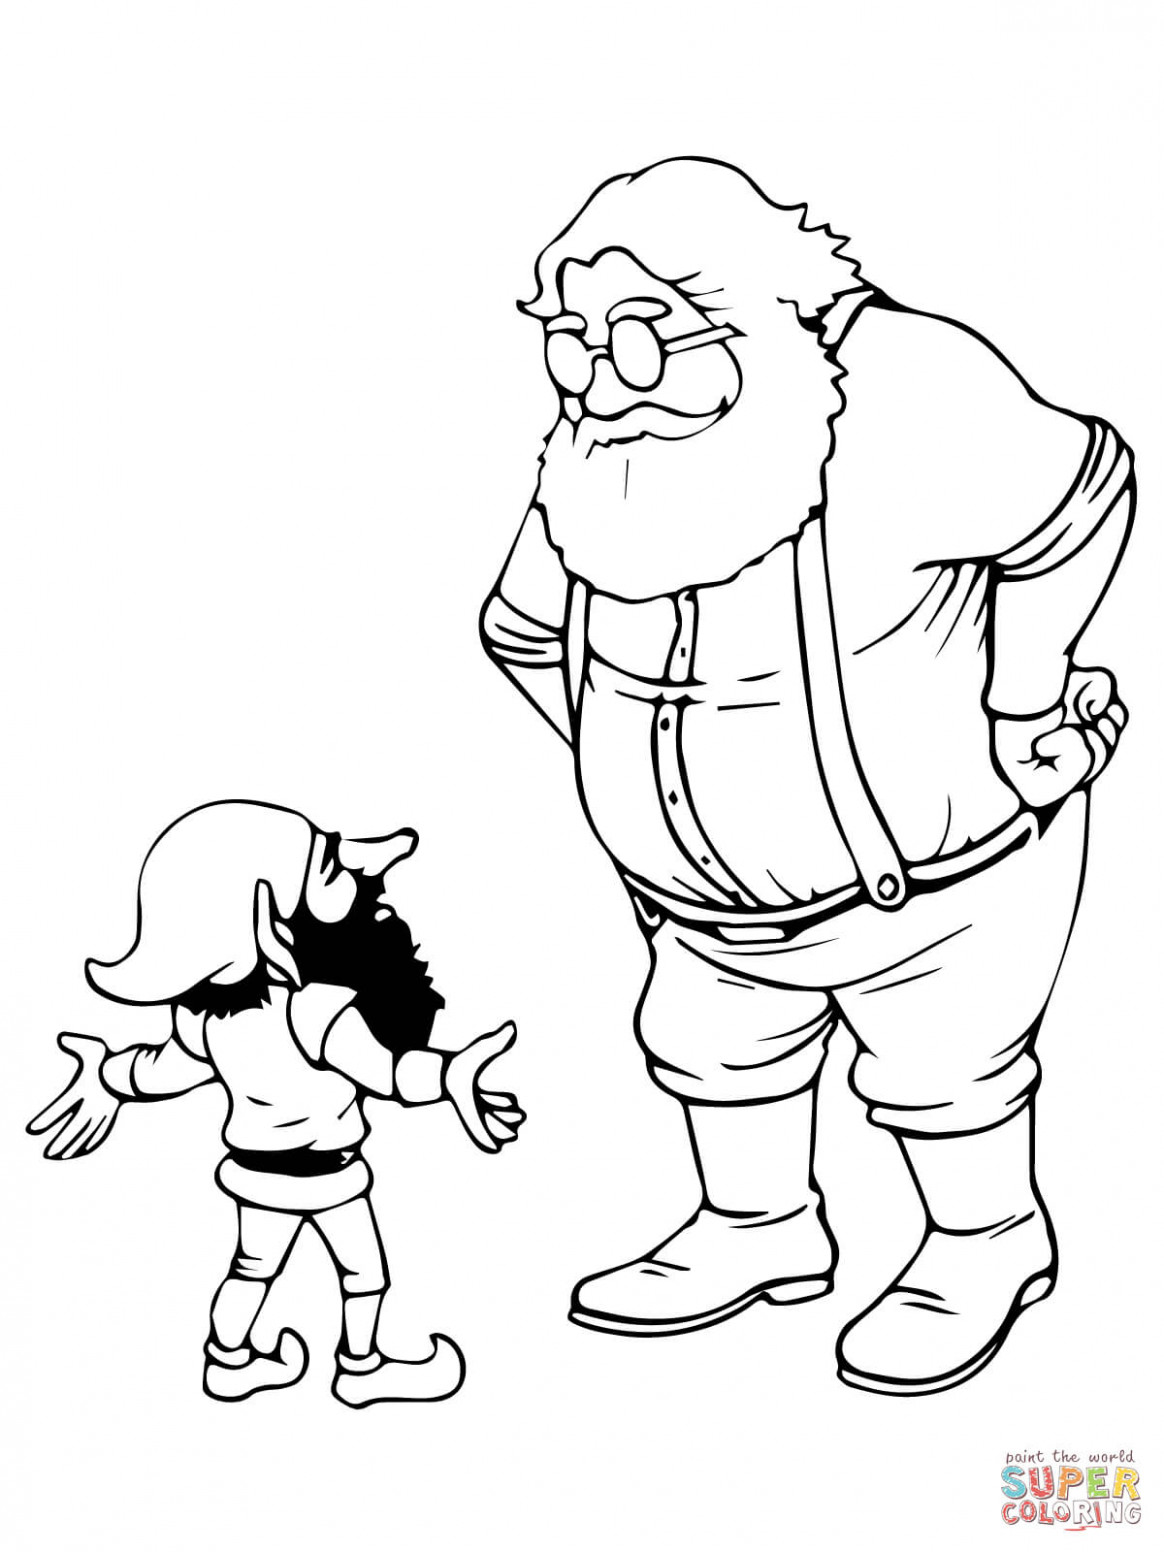 Santa and Christmas Elf coloring page | Free Printable Coloring Pages